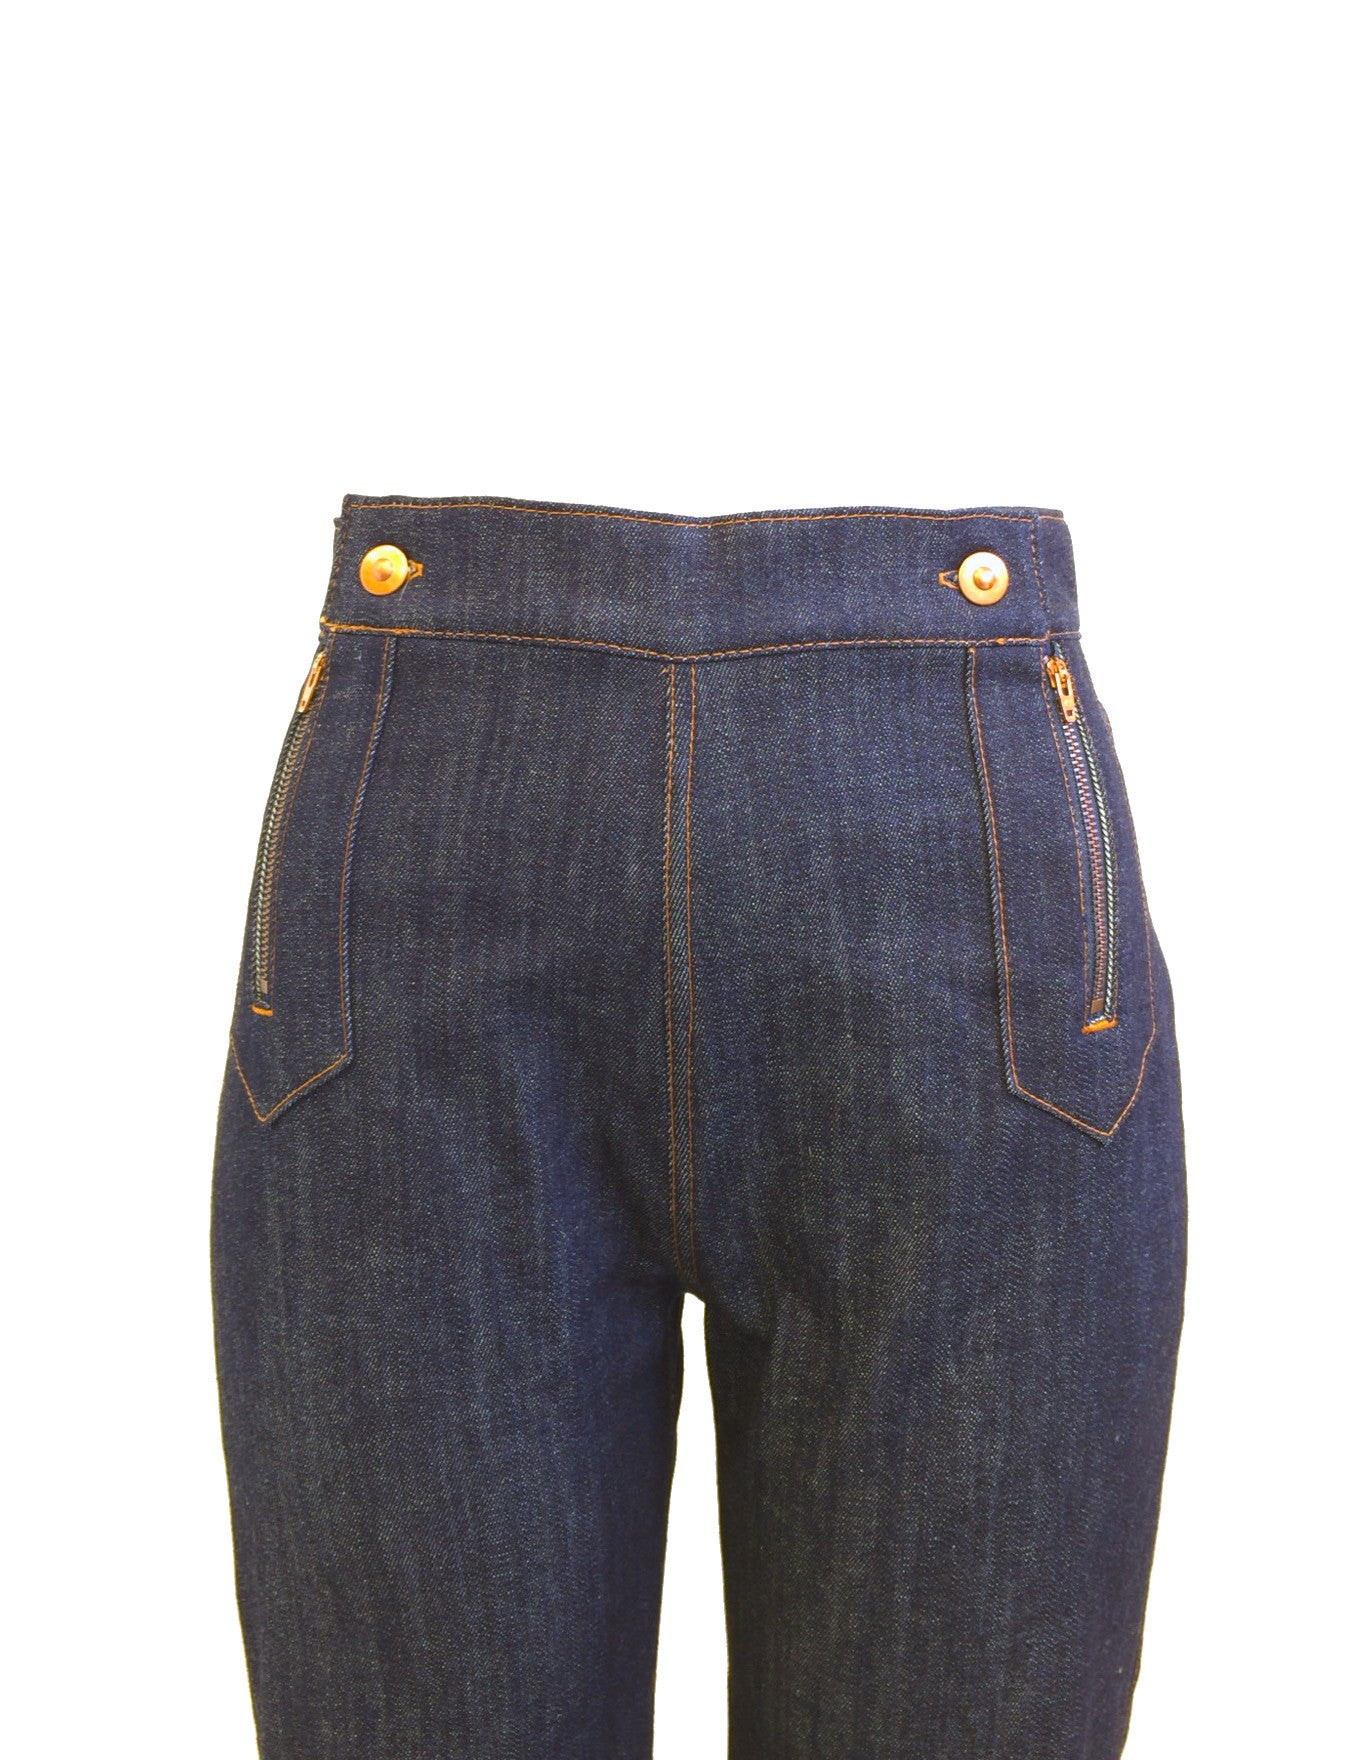 Free shipping & returns on high-waisted jeans for women at skytmeg.cf Shop for high waisted jeans by leg style, wash, waist size, and more from top brands. Free shipping and returns.